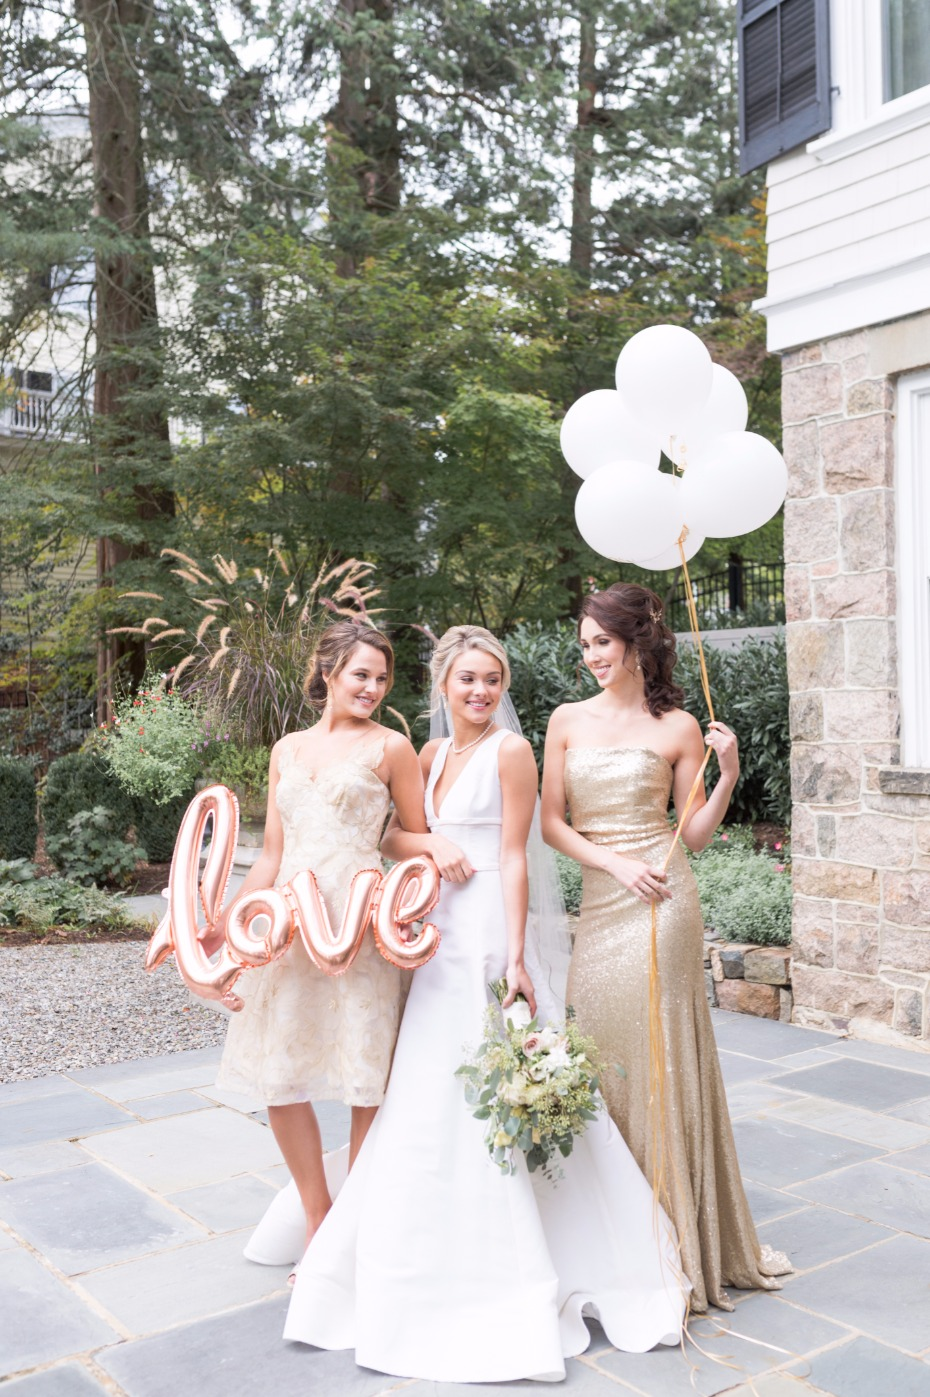 cute bridal party wedding photo ideas